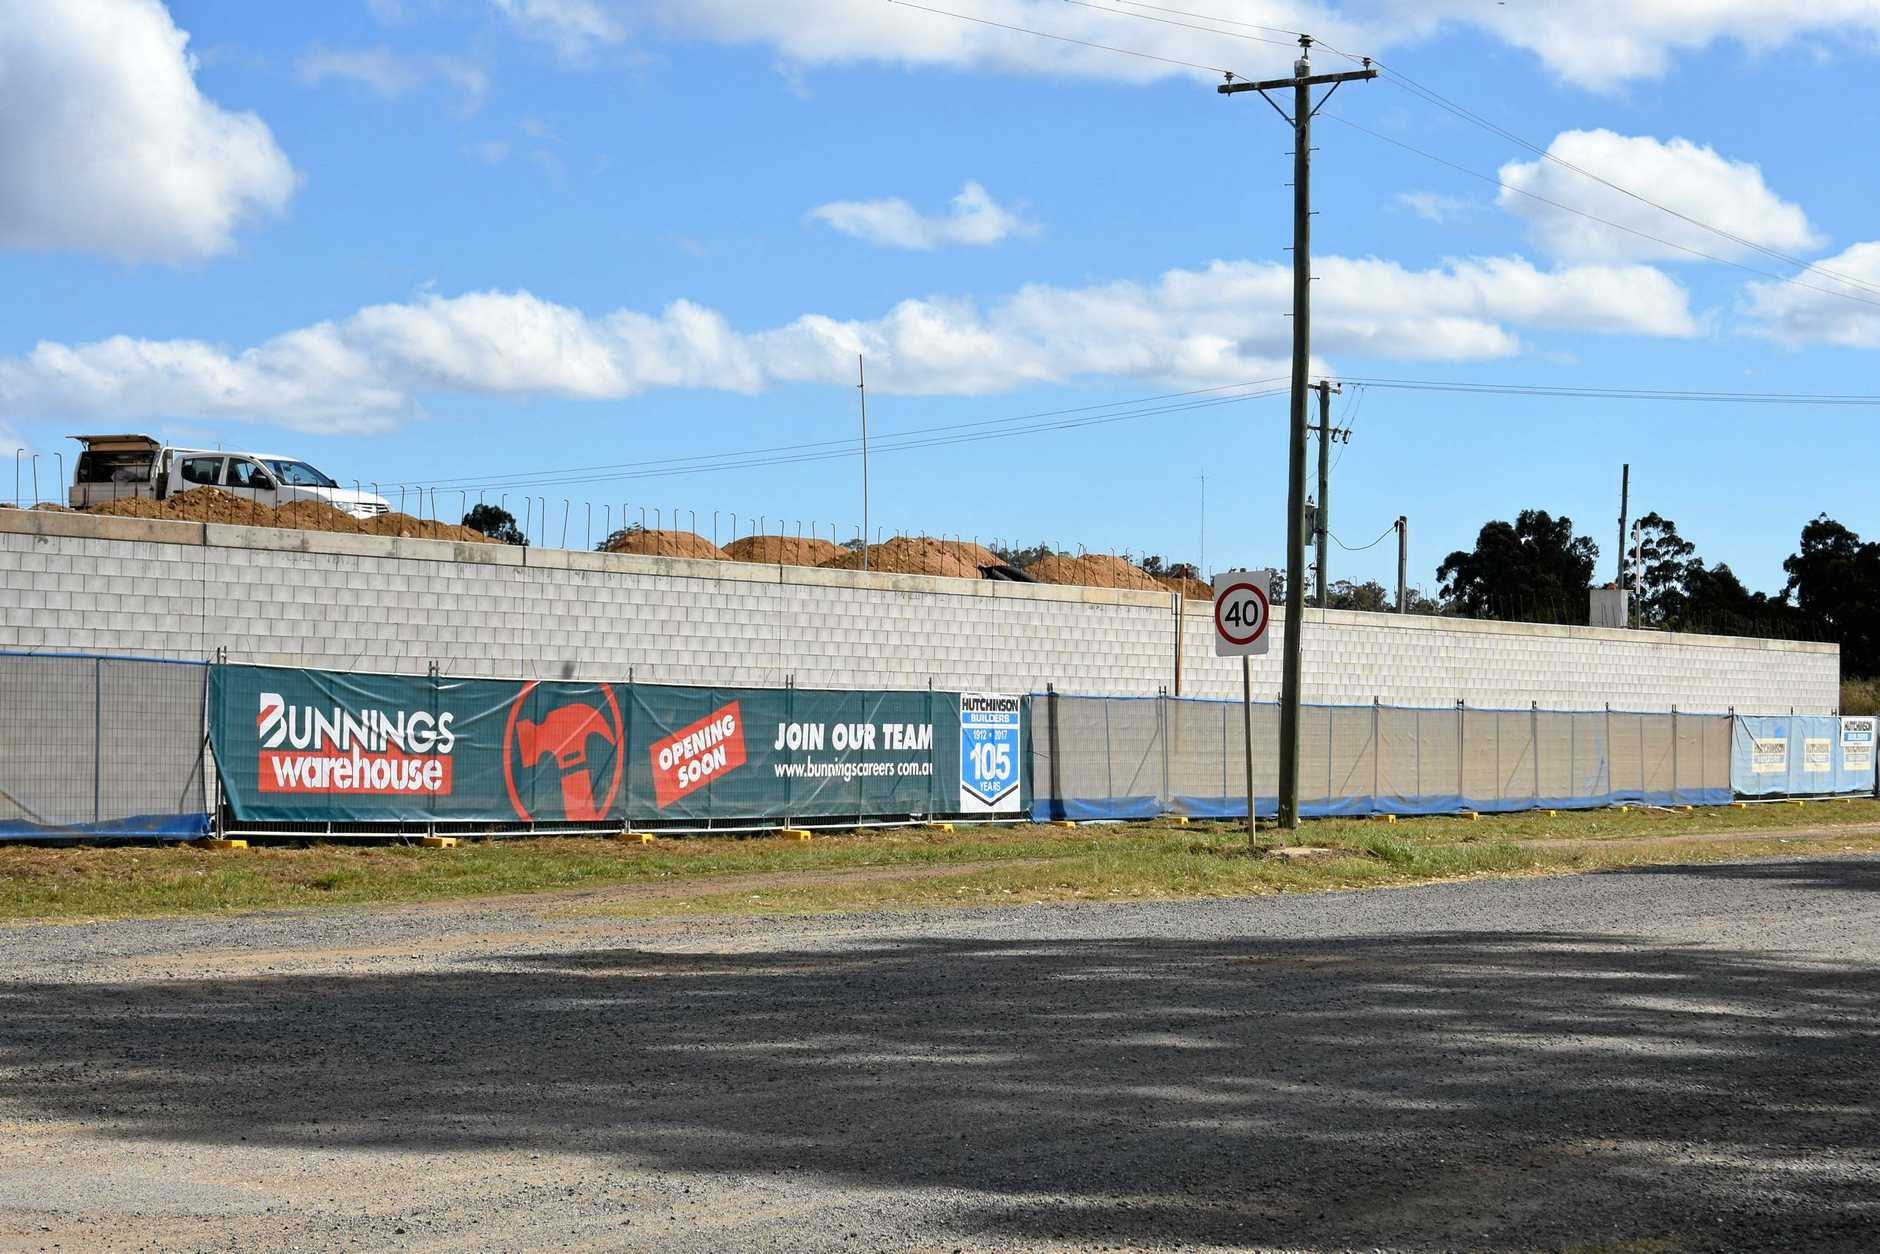 The new Bunnings store in Warwick is taking shape with a massive brick wall already constructed.